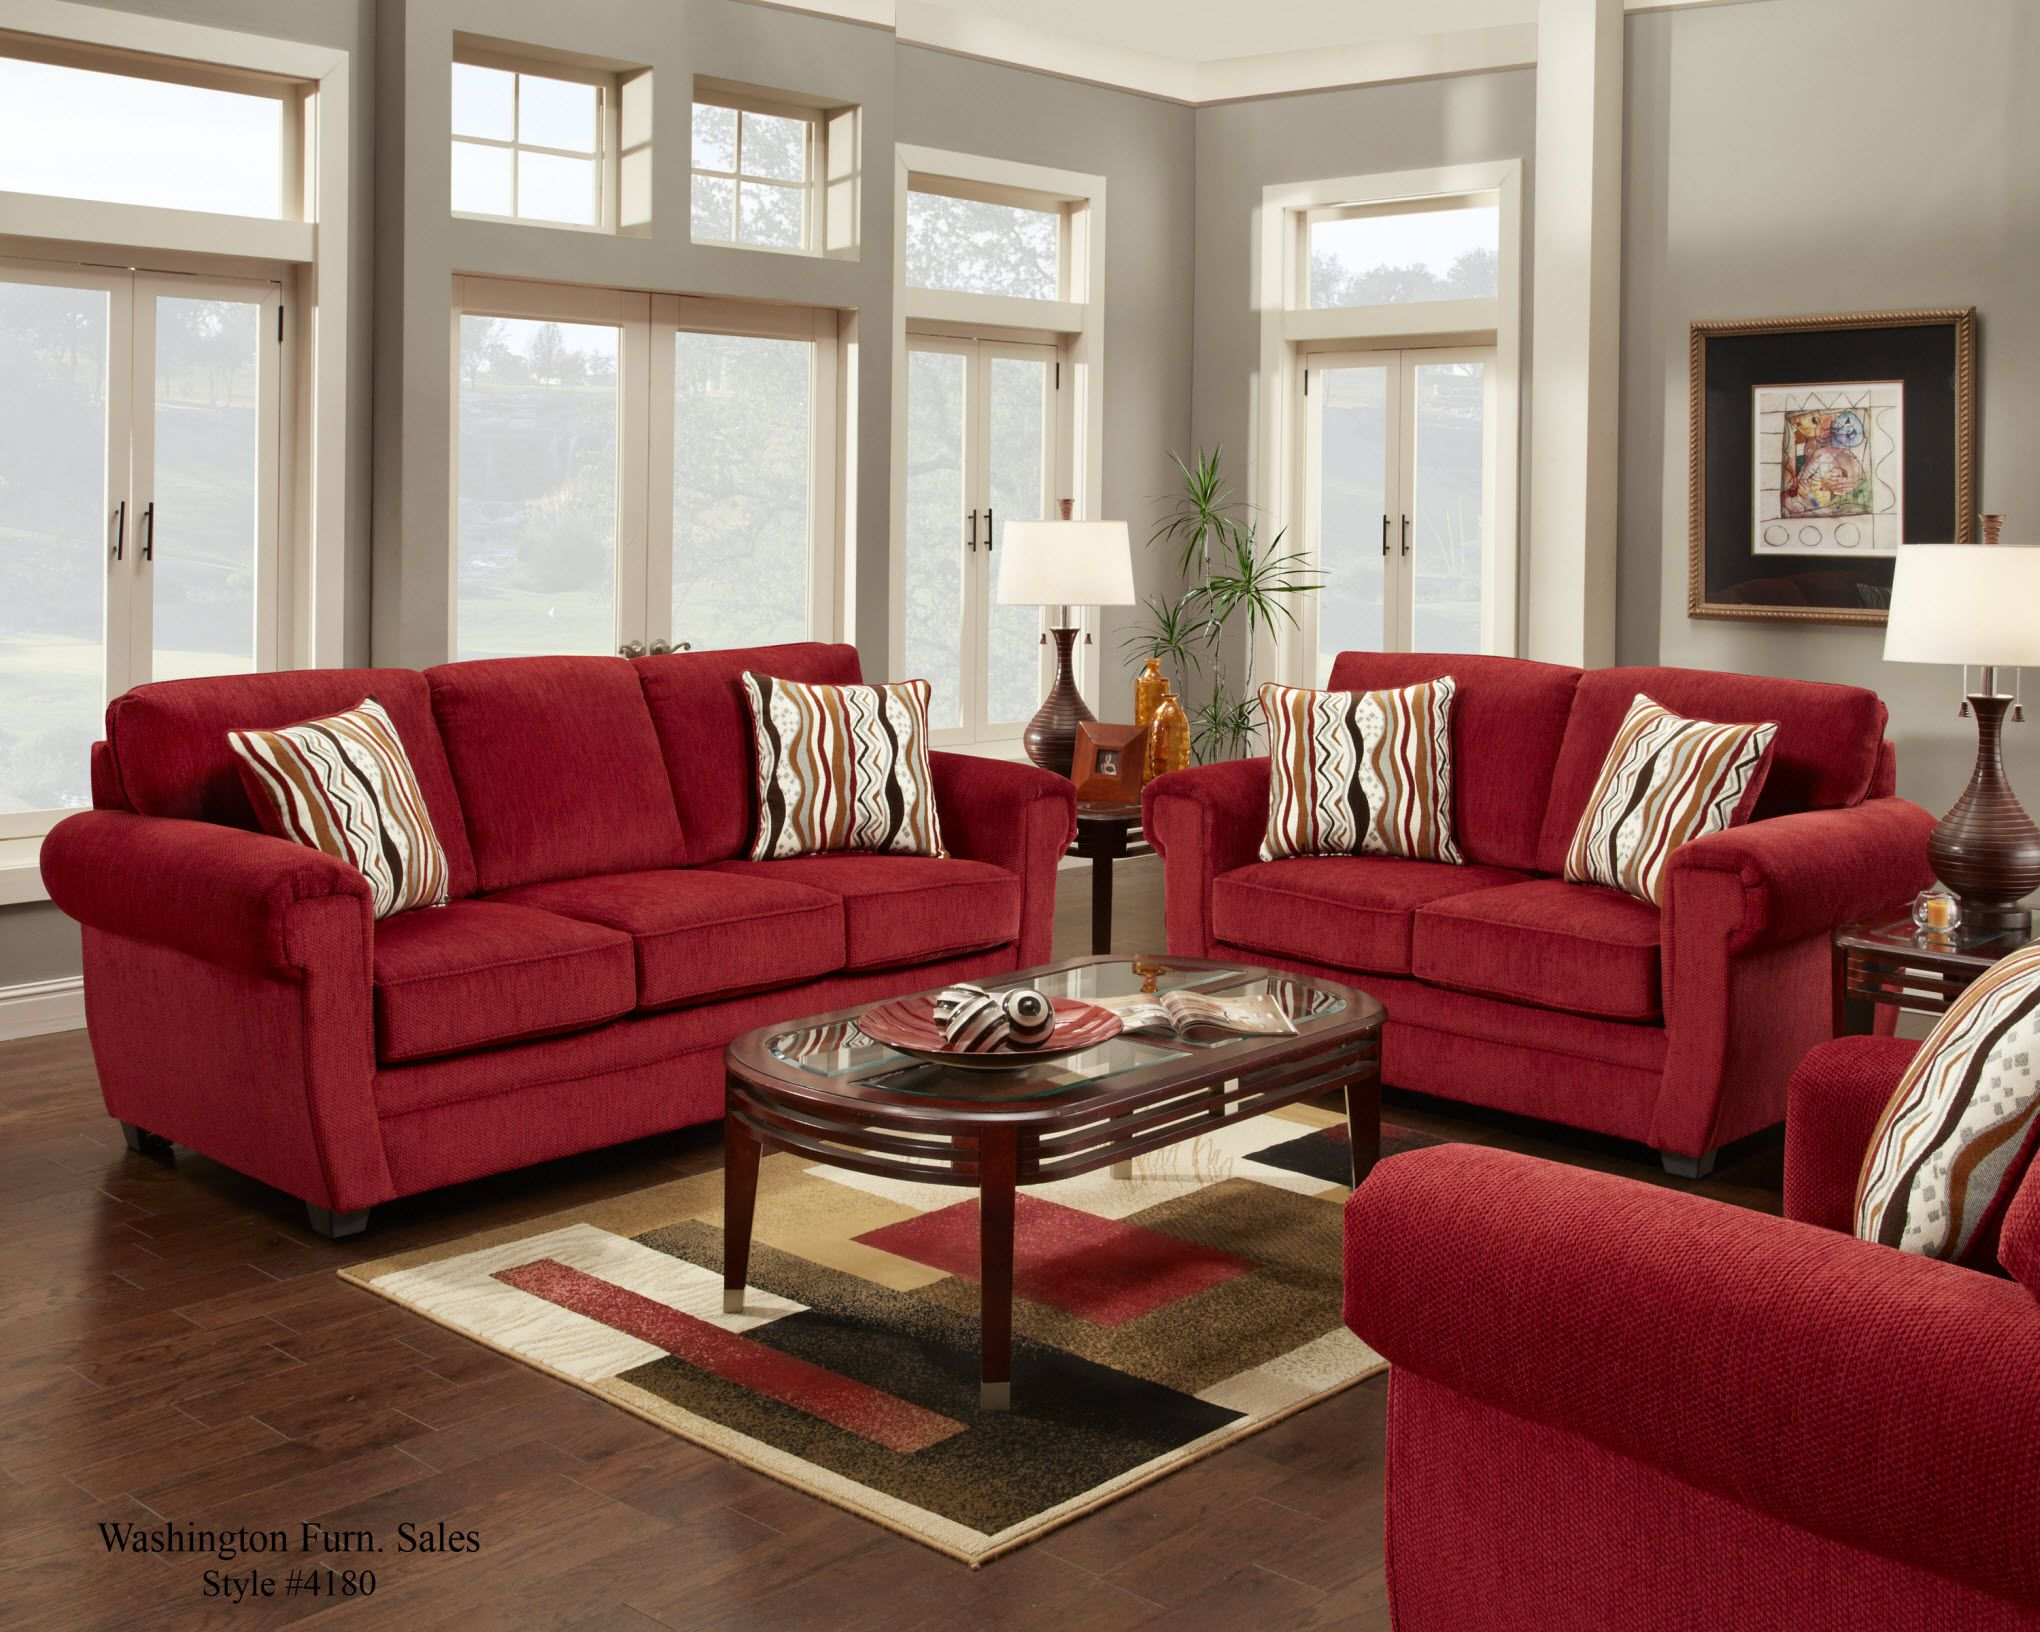 4180 Washington Samson Red Sofa And Loveseat Great Living Rooms